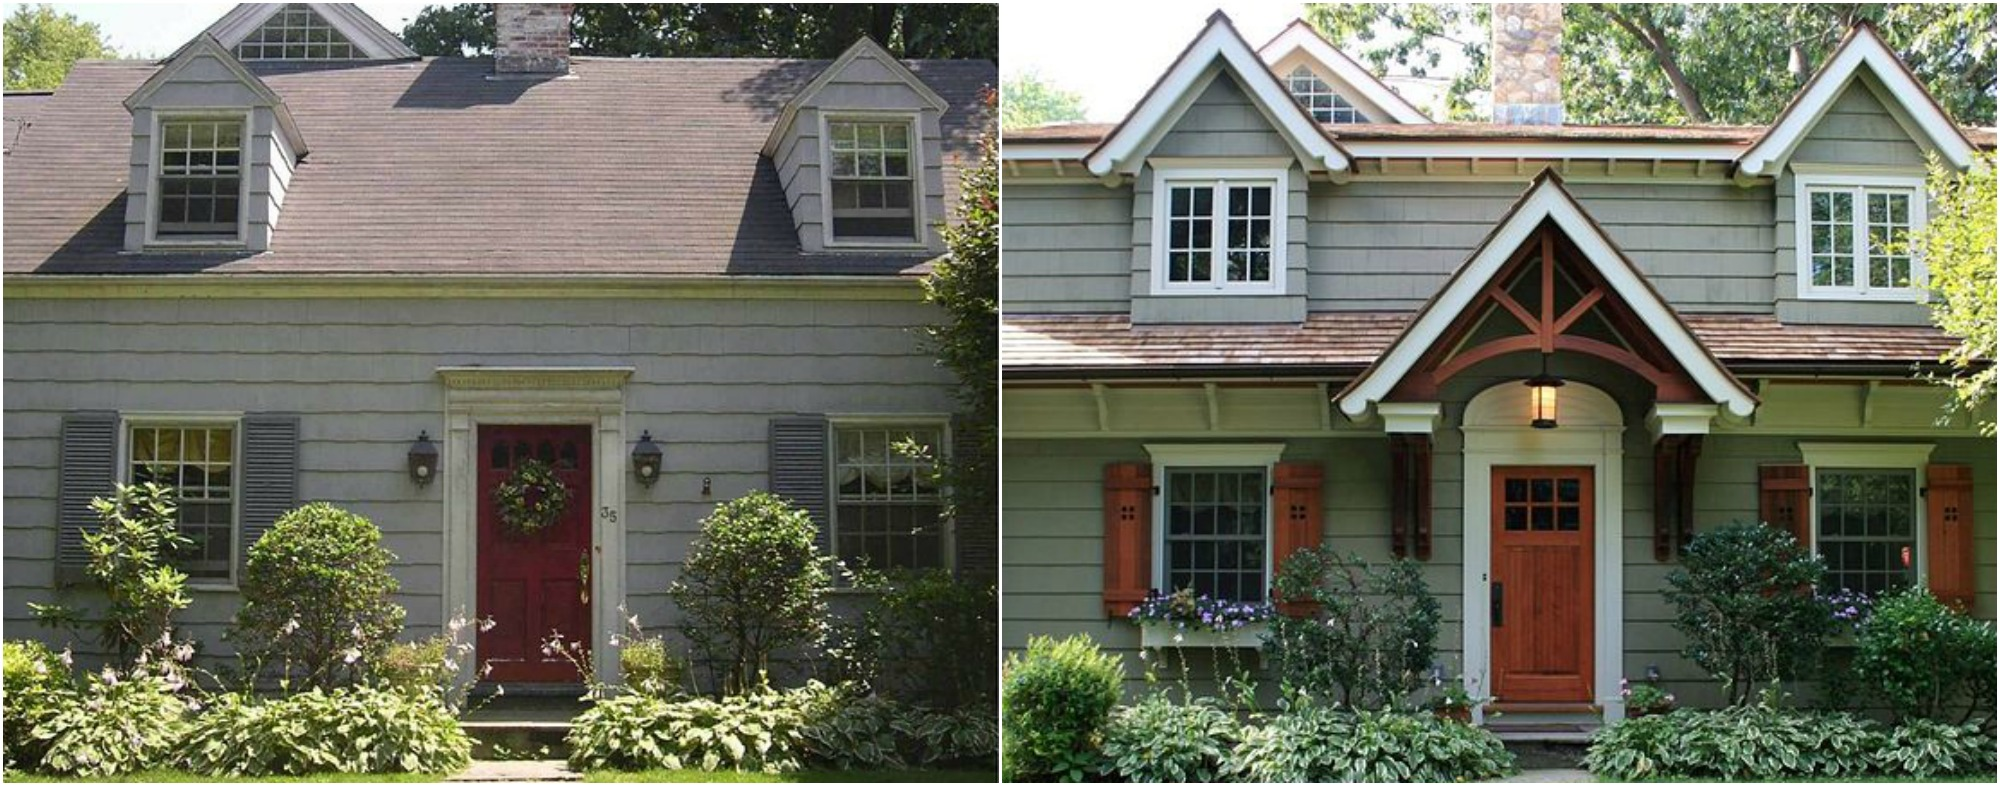 9 incredible home exterior makeovers coldwell banker for Exterior makeover ideas